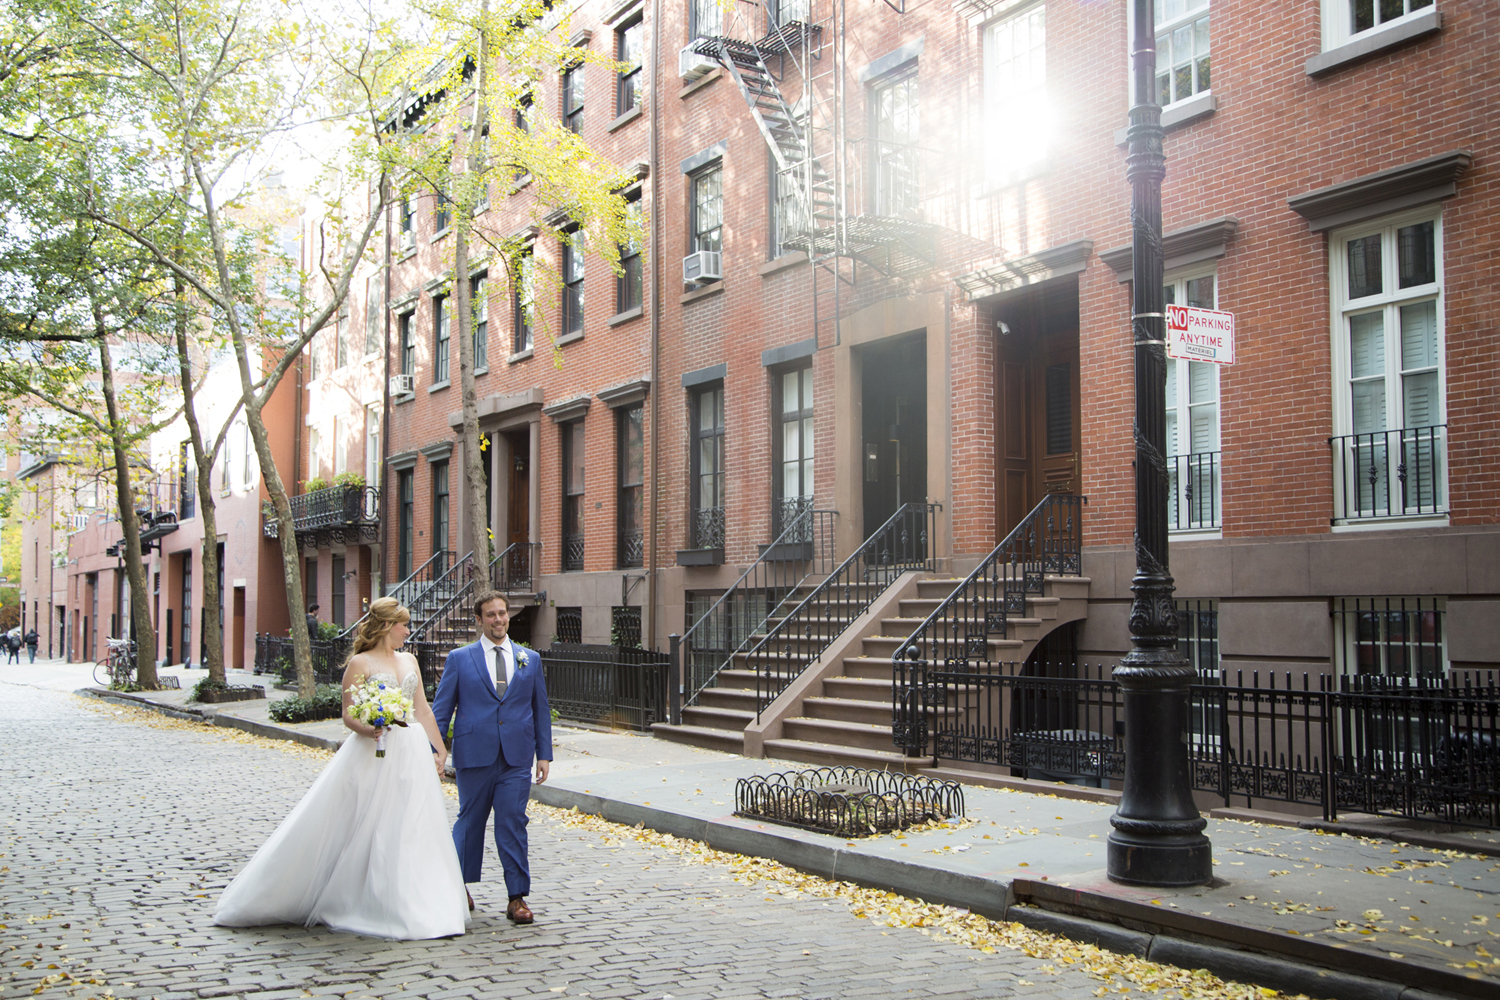 bride and groom walking on cobbestone street in west village, NYC on their wedding day. NYC wedding photographers